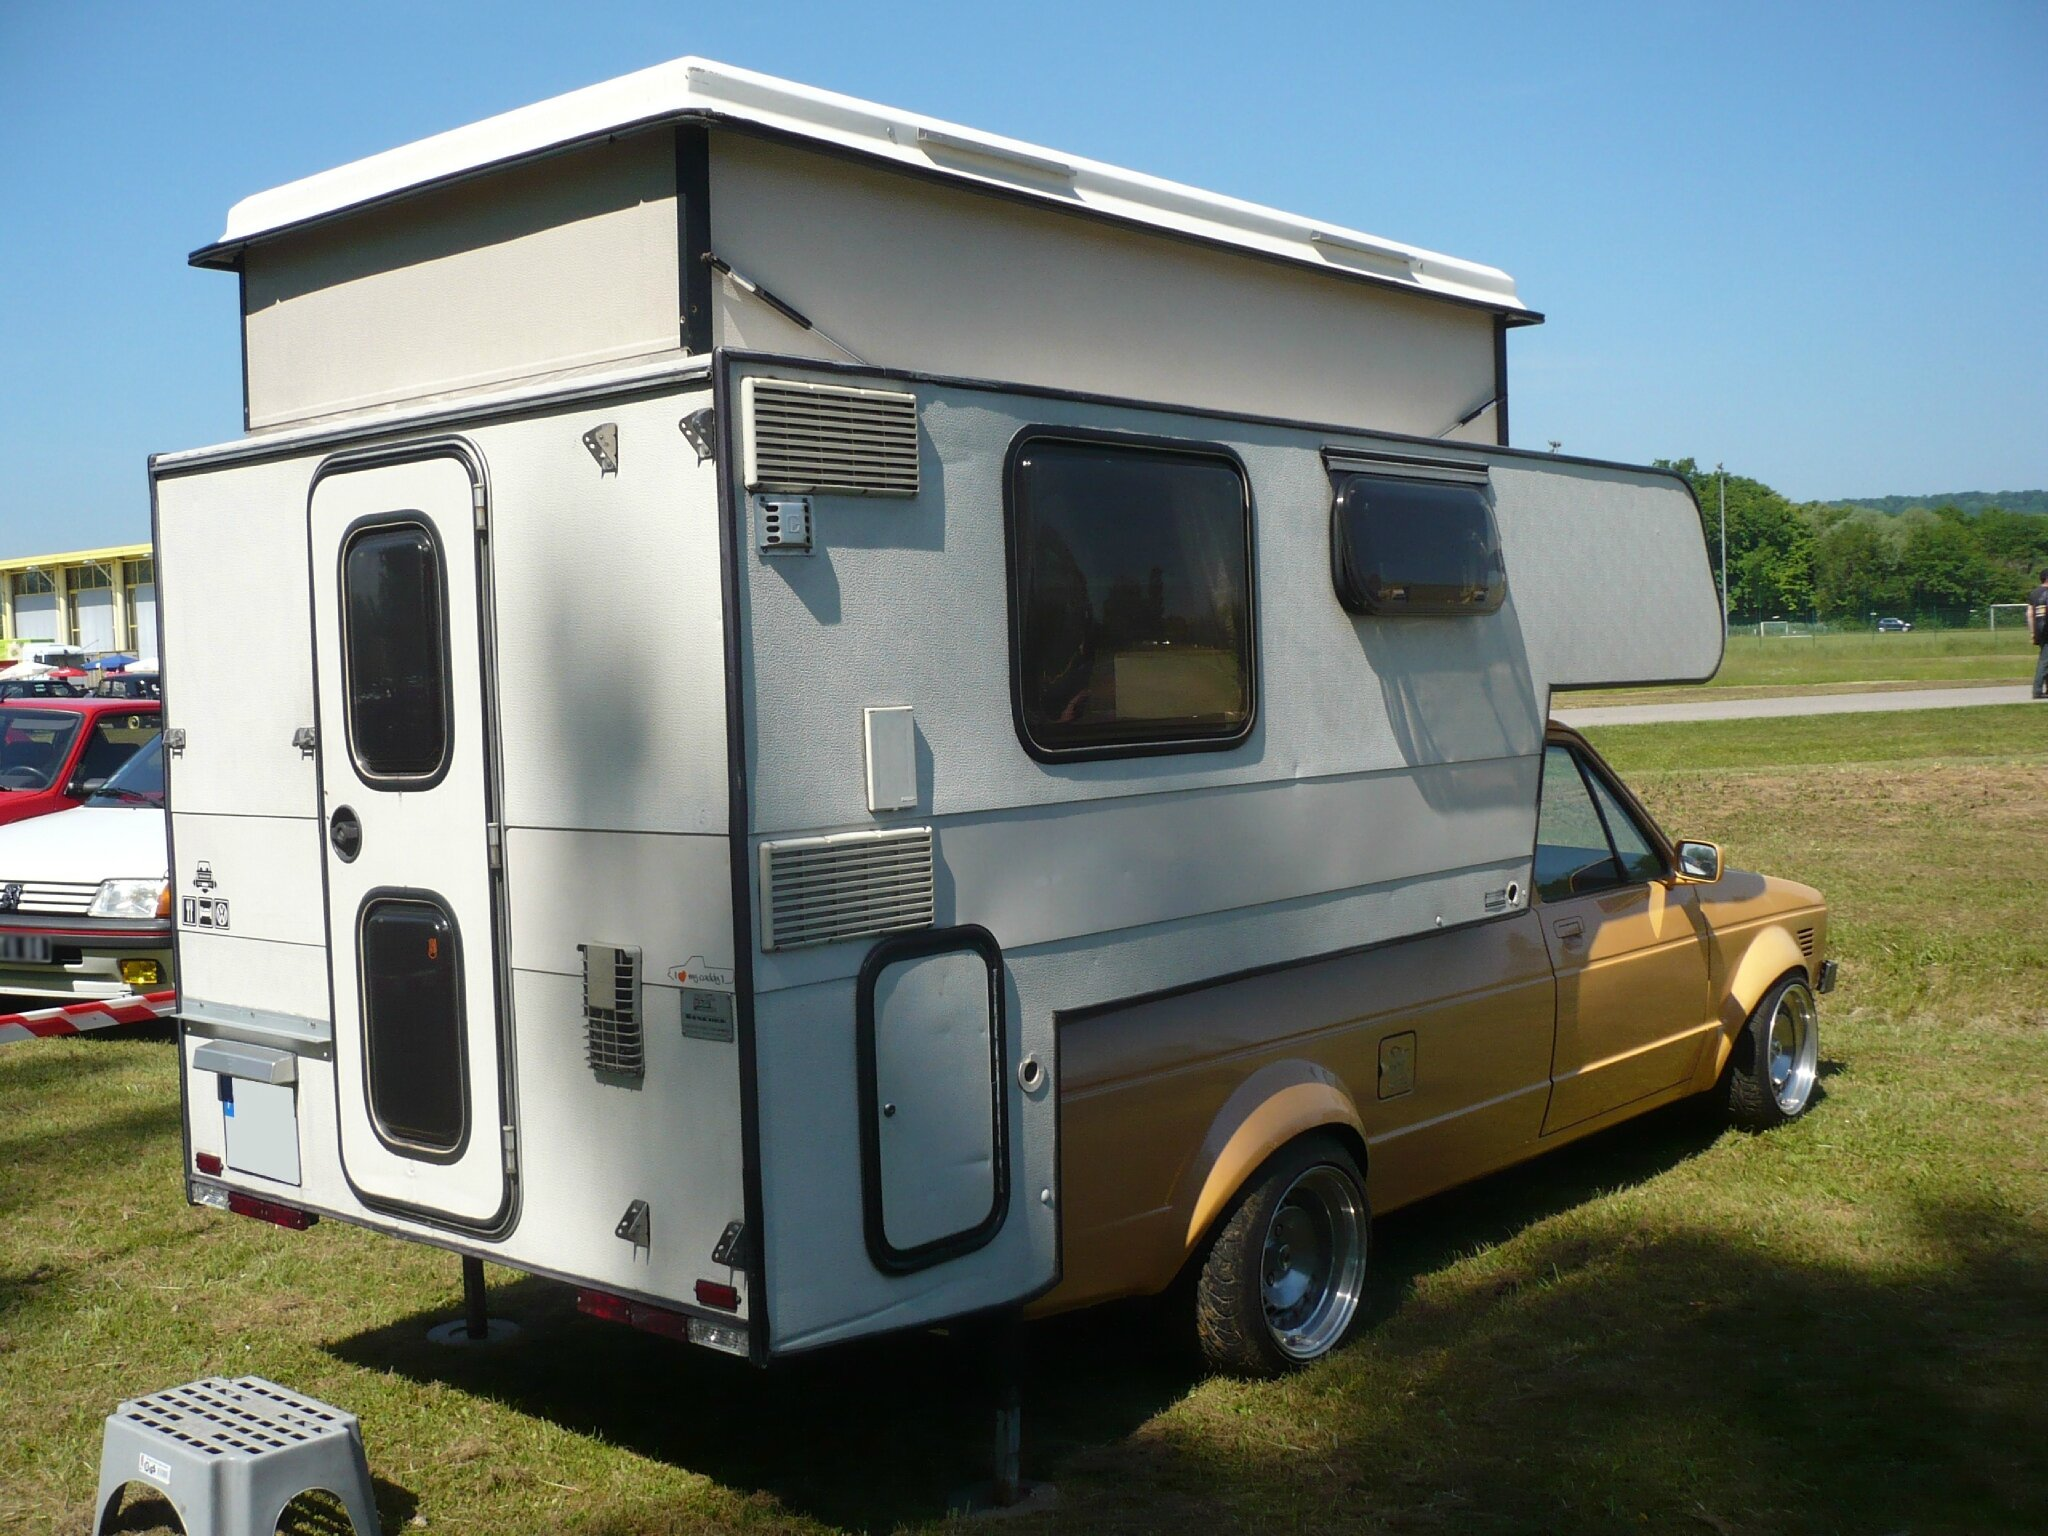 volkswagen caddy pick up avec cellule camping car vroom vroom. Black Bedroom Furniture Sets. Home Design Ideas